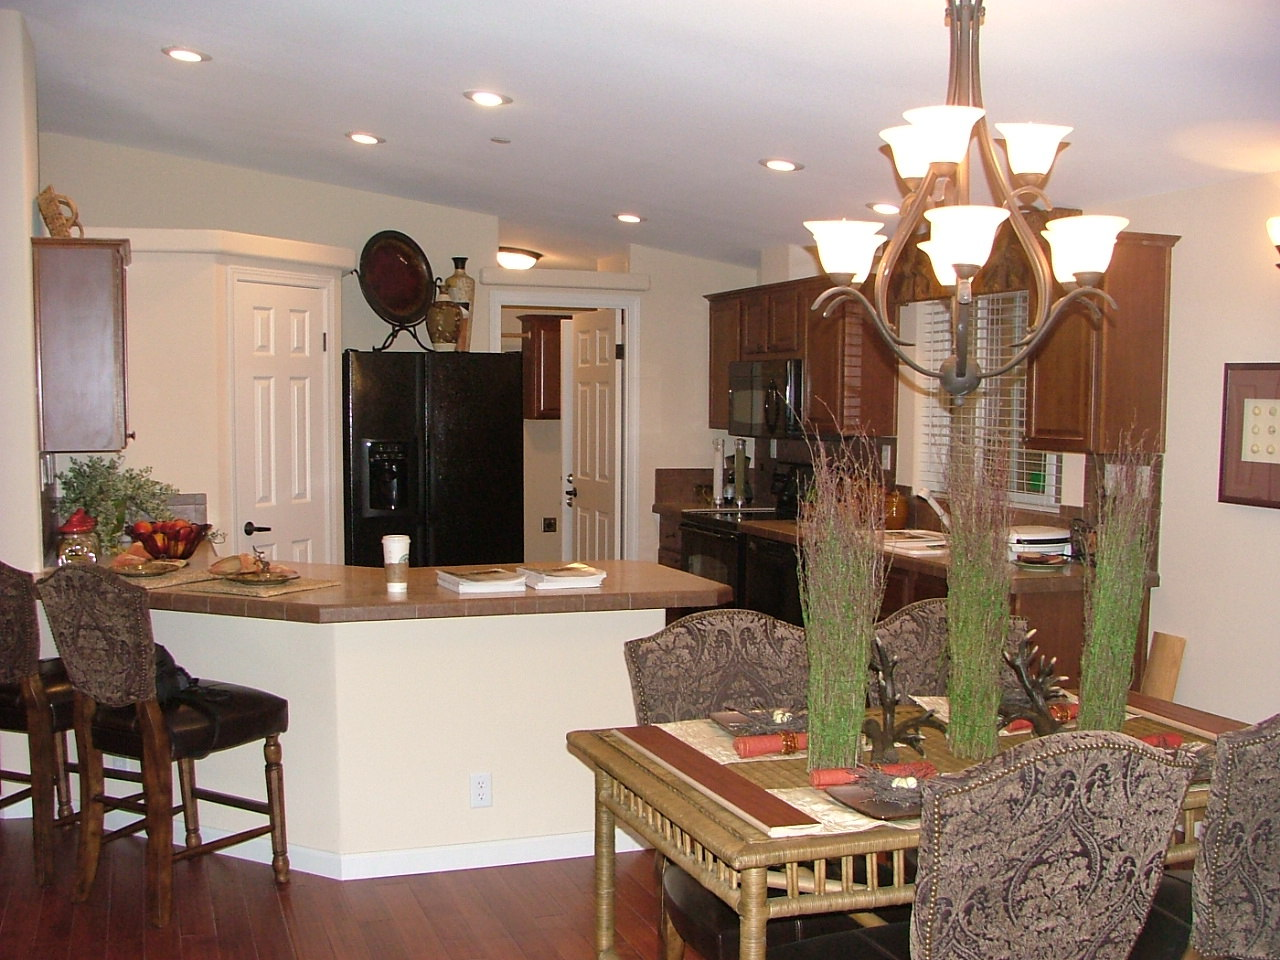 kitchen2_1280_8 Palm Harbor Manufactured Homes on skyline manufactured homes, best manufactured homes, champion manufactured homes, california manufactured homes, boston manufactured homes, two-story double wide homes, austin texas homes, golden west manufactured homes, fleetwood homes, used single wide homes, west palm beach manufactured homes, cavalier manufactured homes, hawaii manufactured homes, texas manufactured homes,